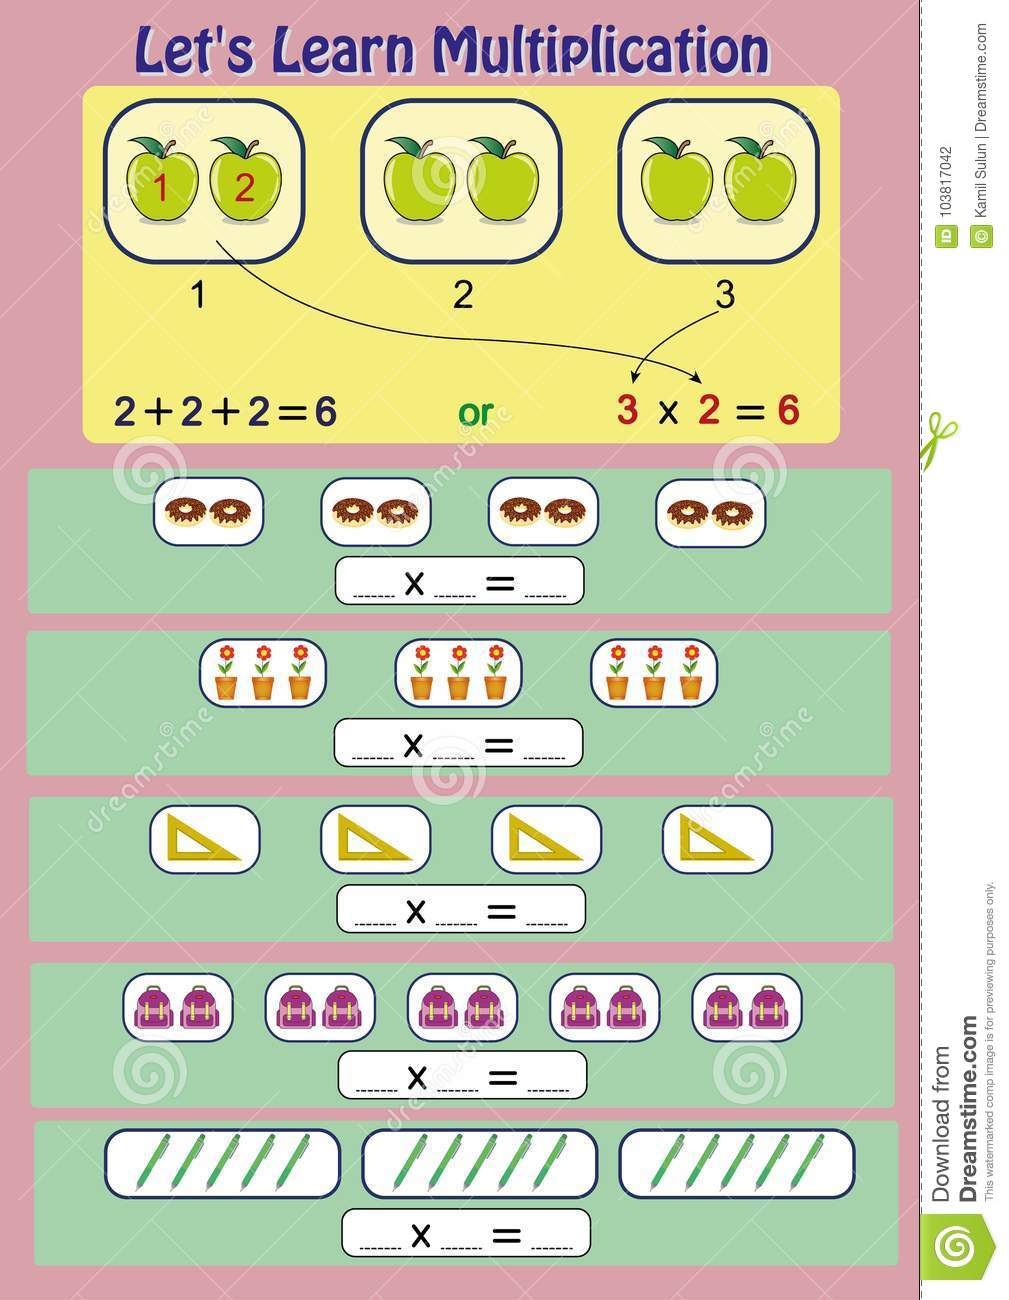 Let`s Learn Multiplication, Mathematical Activity, Multiplication ...